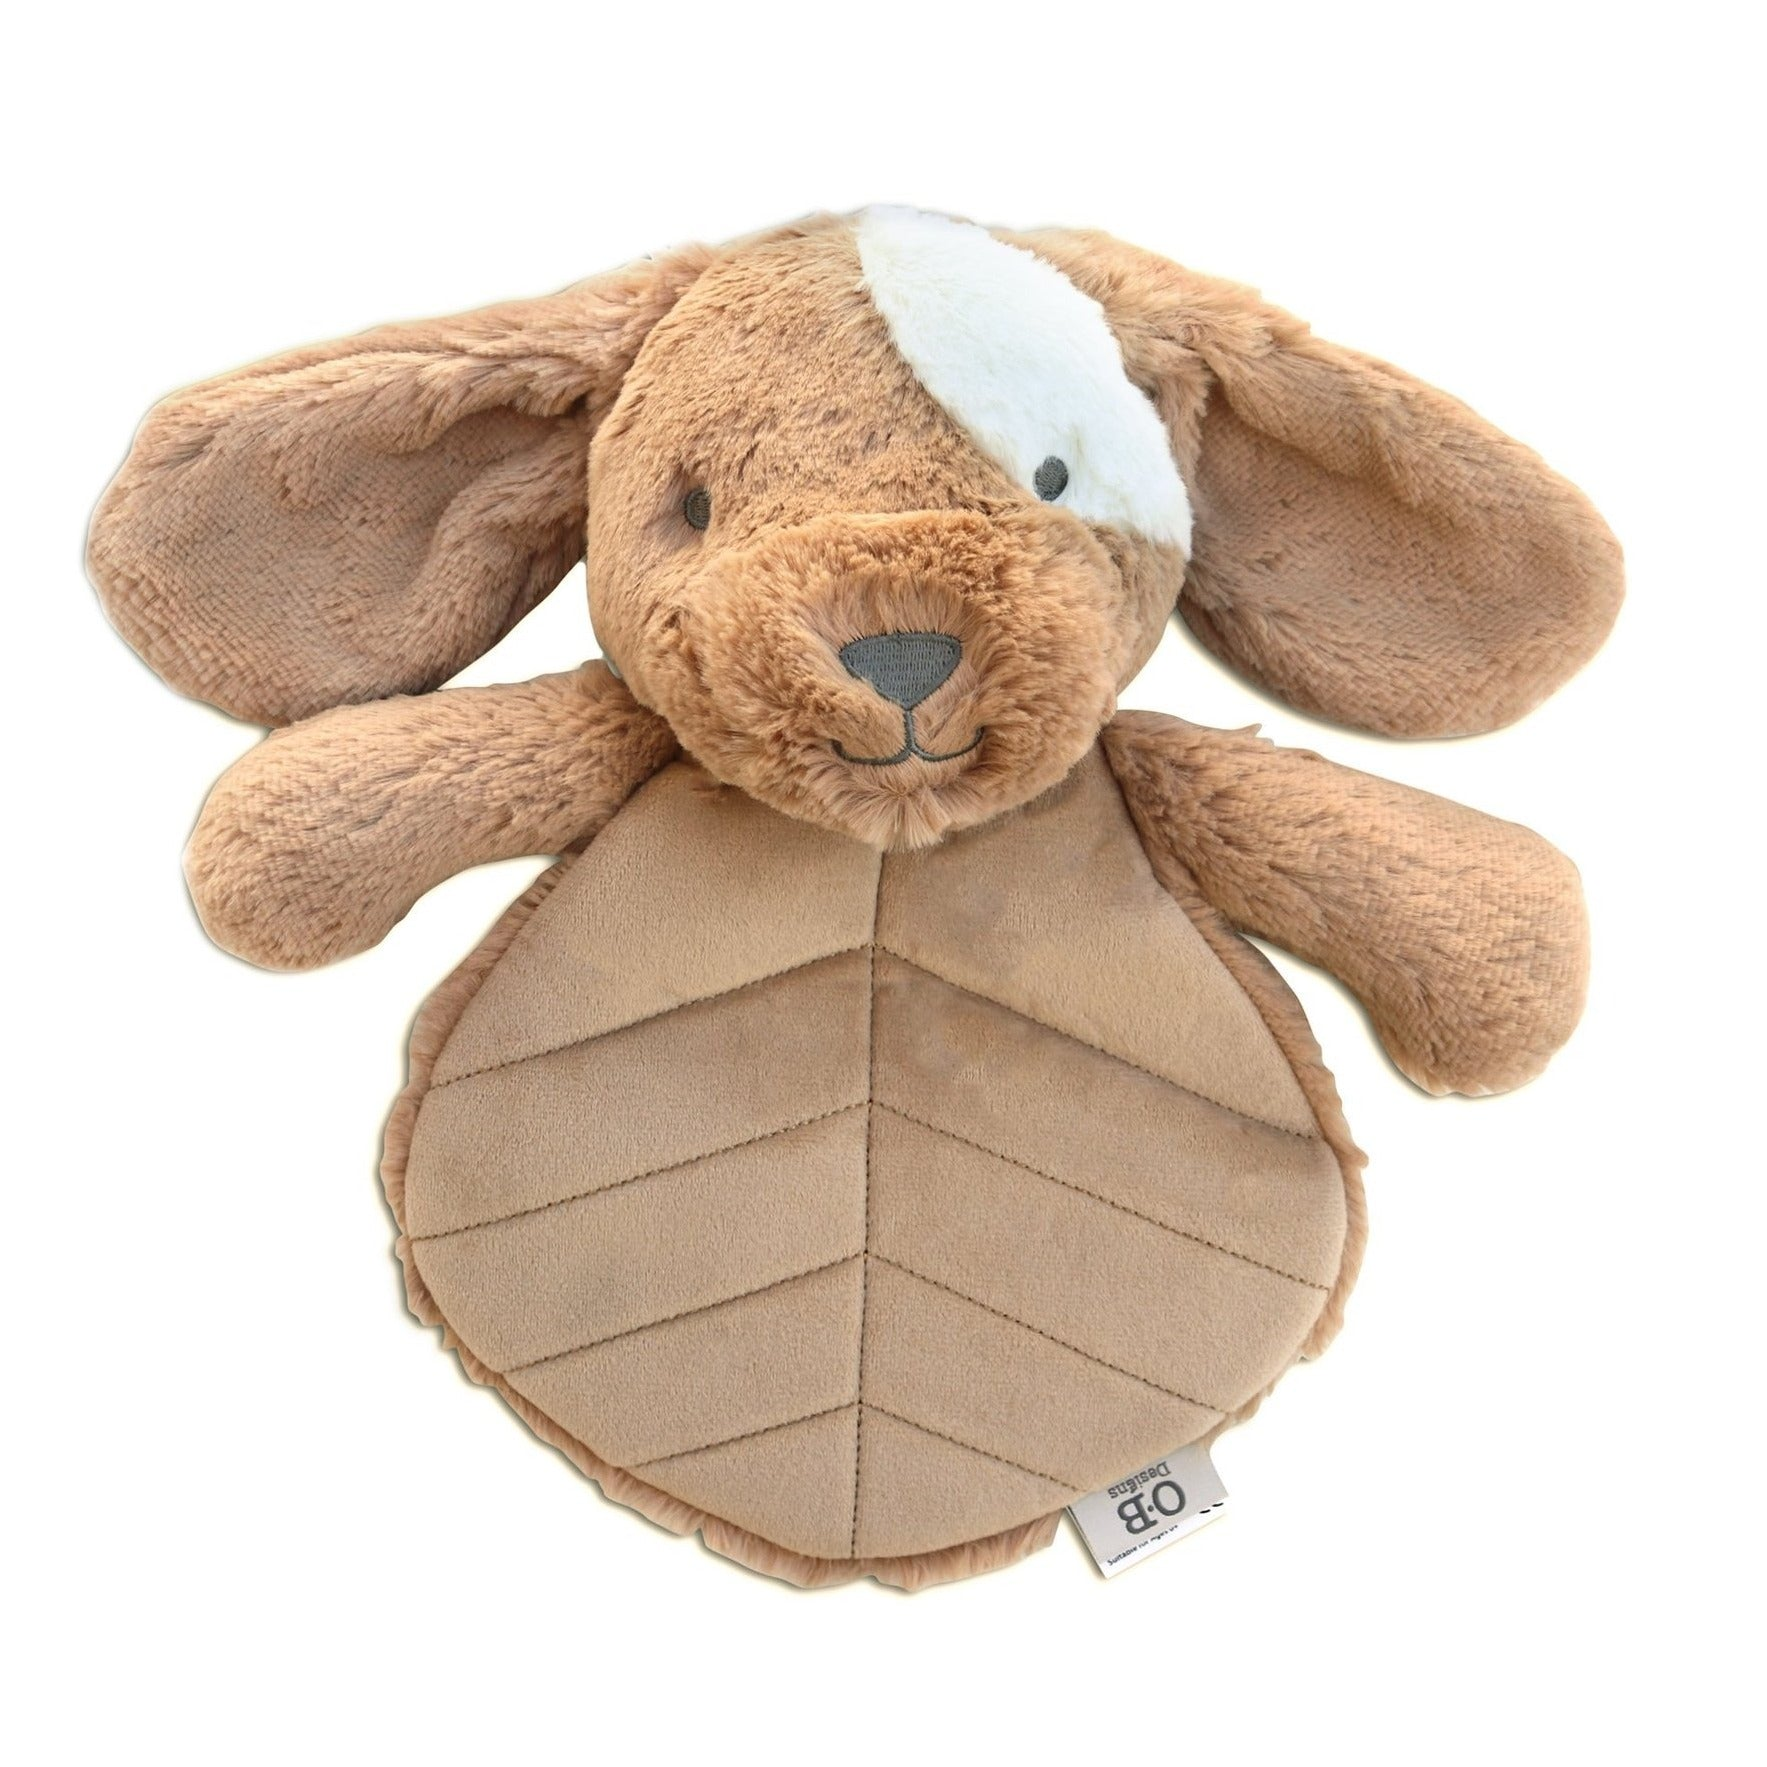 O.B. Designs: Duke Dog Baby Lovey